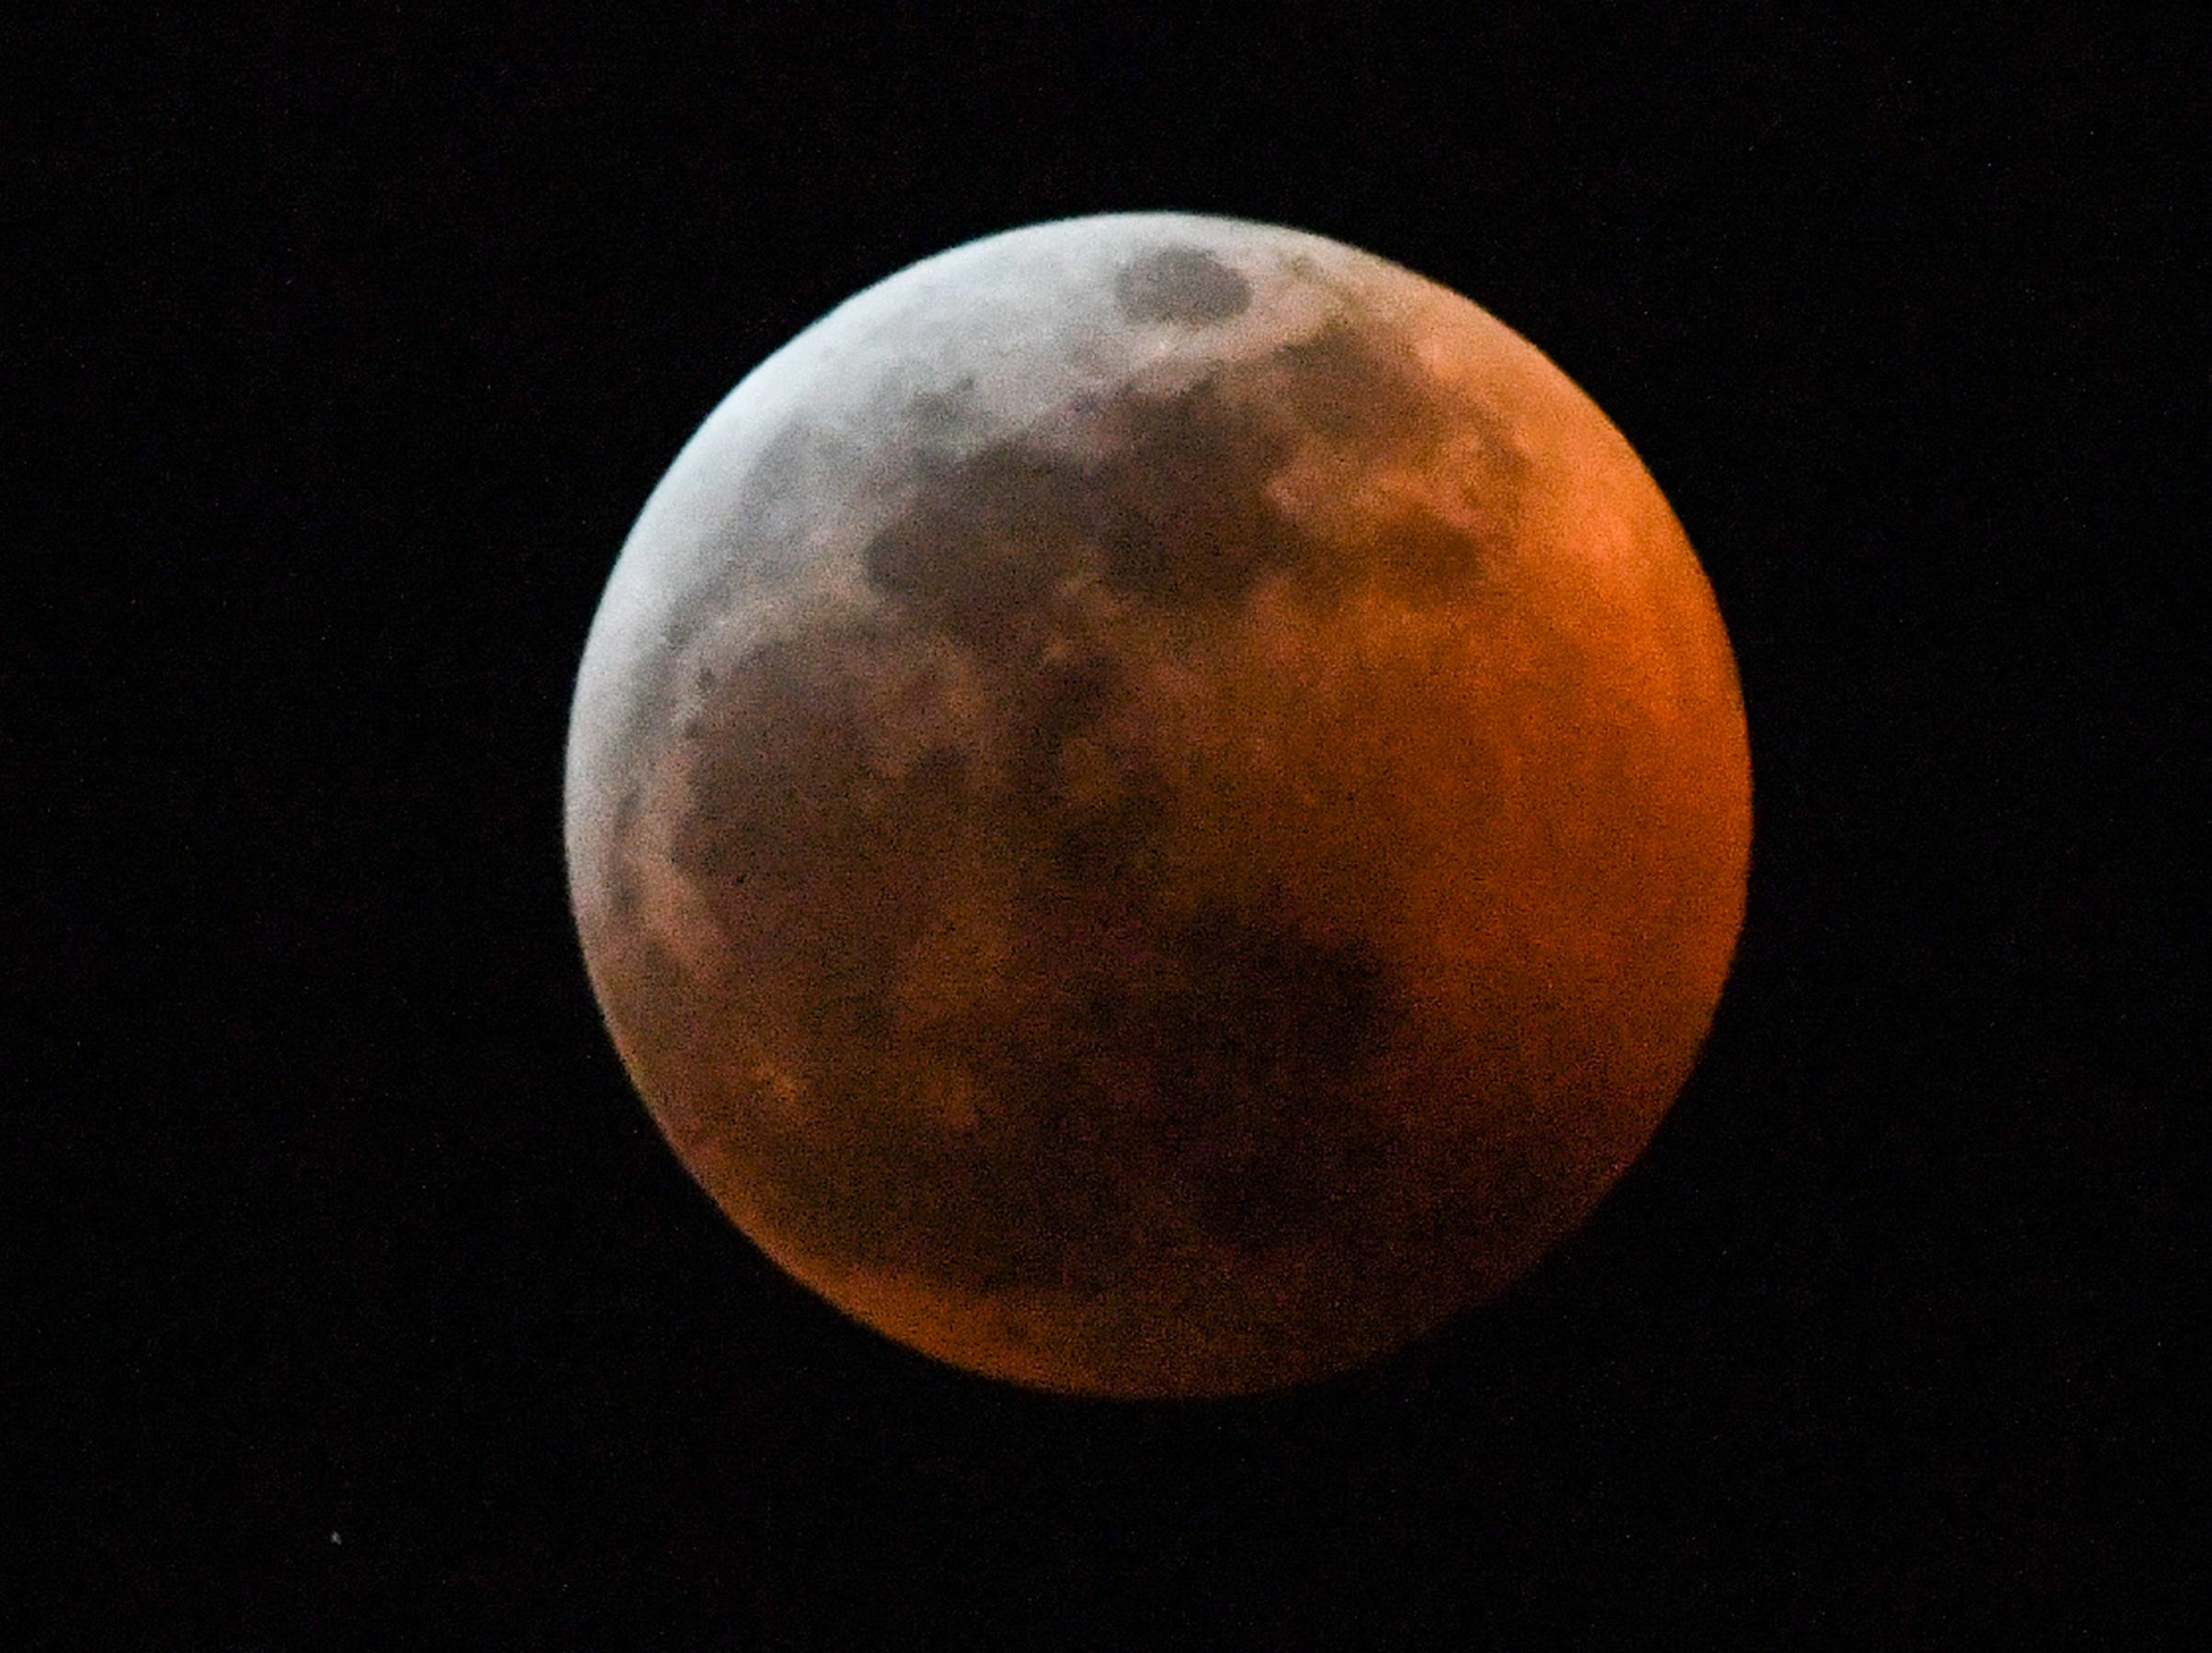 The Super blood wolf moon total lunar eclipse, at 11:49 p.m. (EST) January 20, 2019, shortly after when the moon edged into Earth's shadow and became darkened at 11:41 p.m., seen from Anderson, S.C.